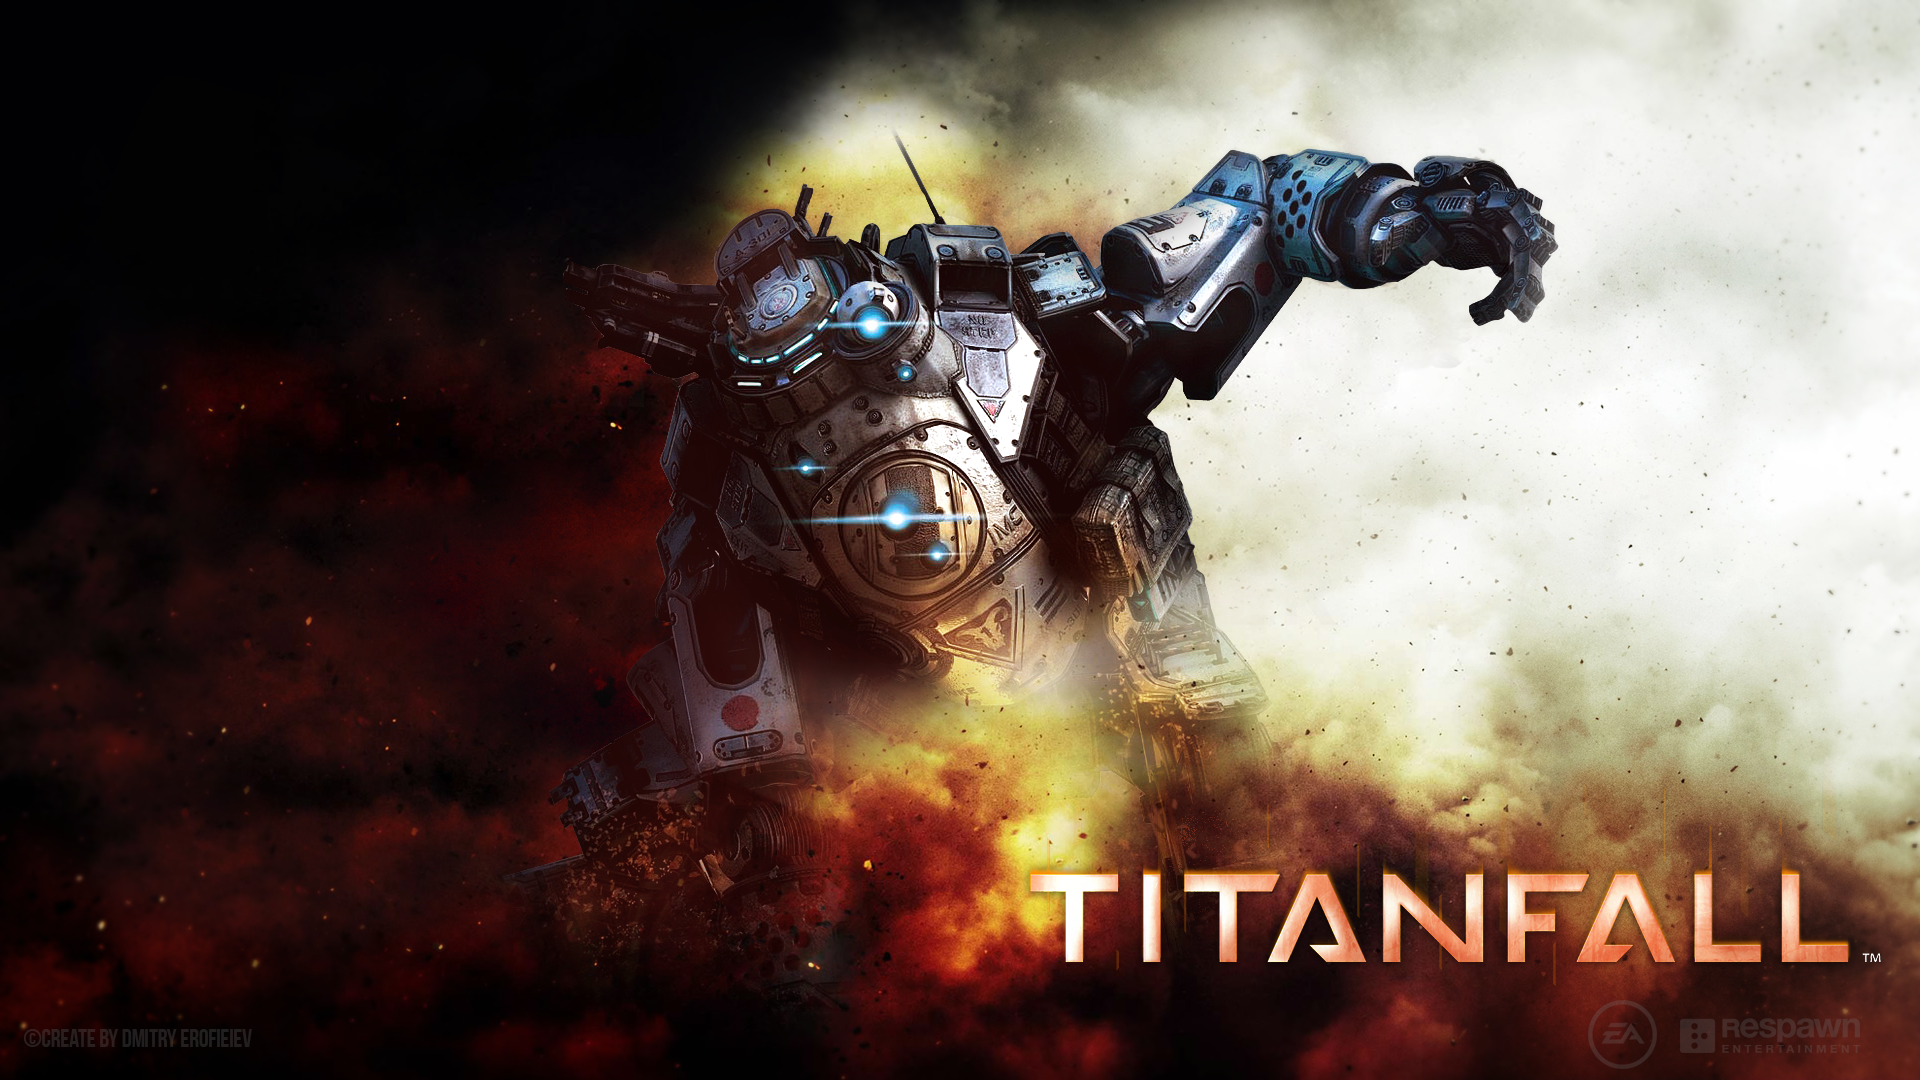 Titanfall Wallpapers Big Hd Wallpaper Background Image